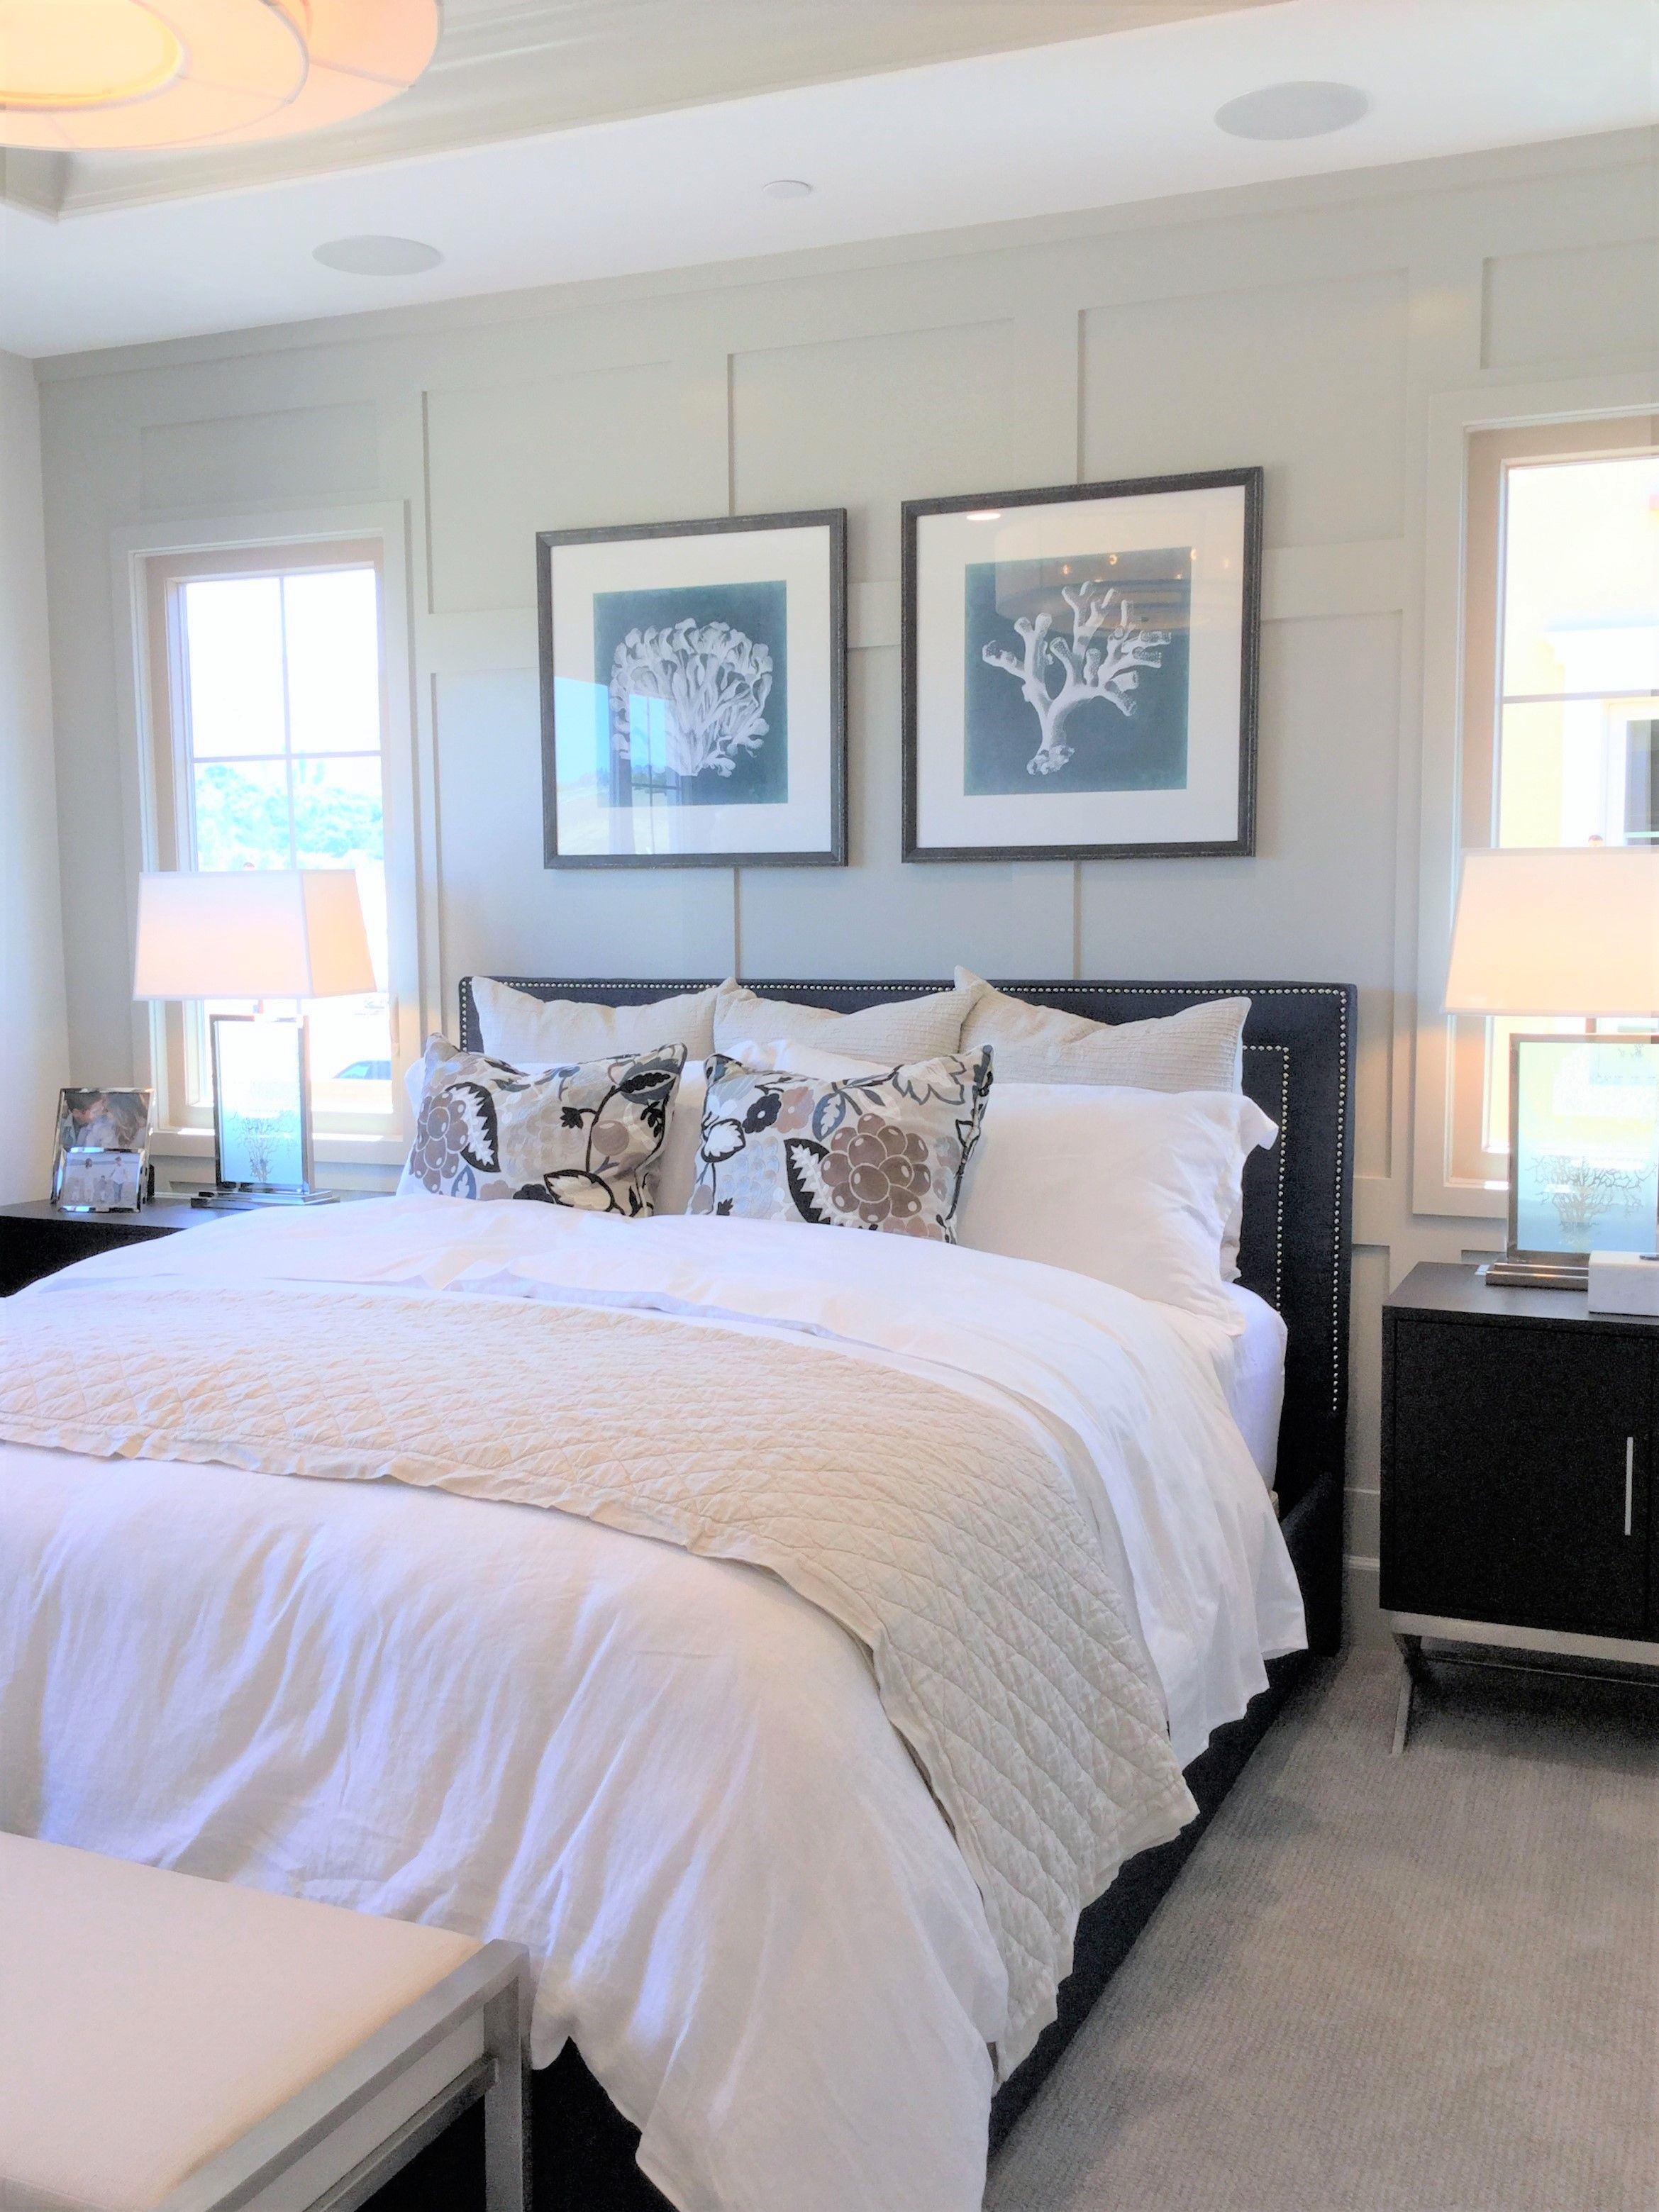 Natural Bedroom Decor: Natural Light Brightens This Bedroom At Varenna In The